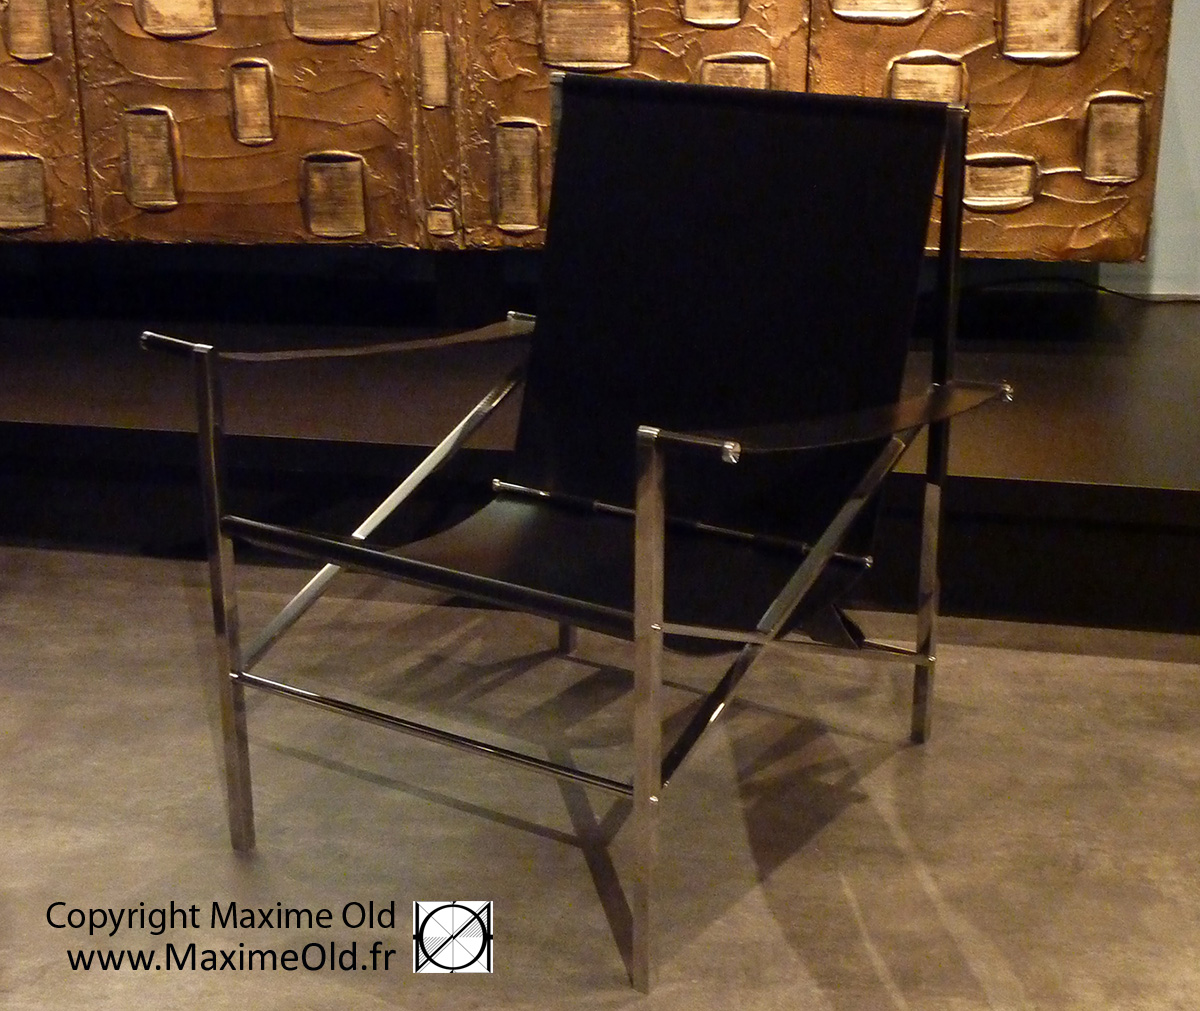 Maxime Old Seats: Maxime Old VIP Deck Armchair